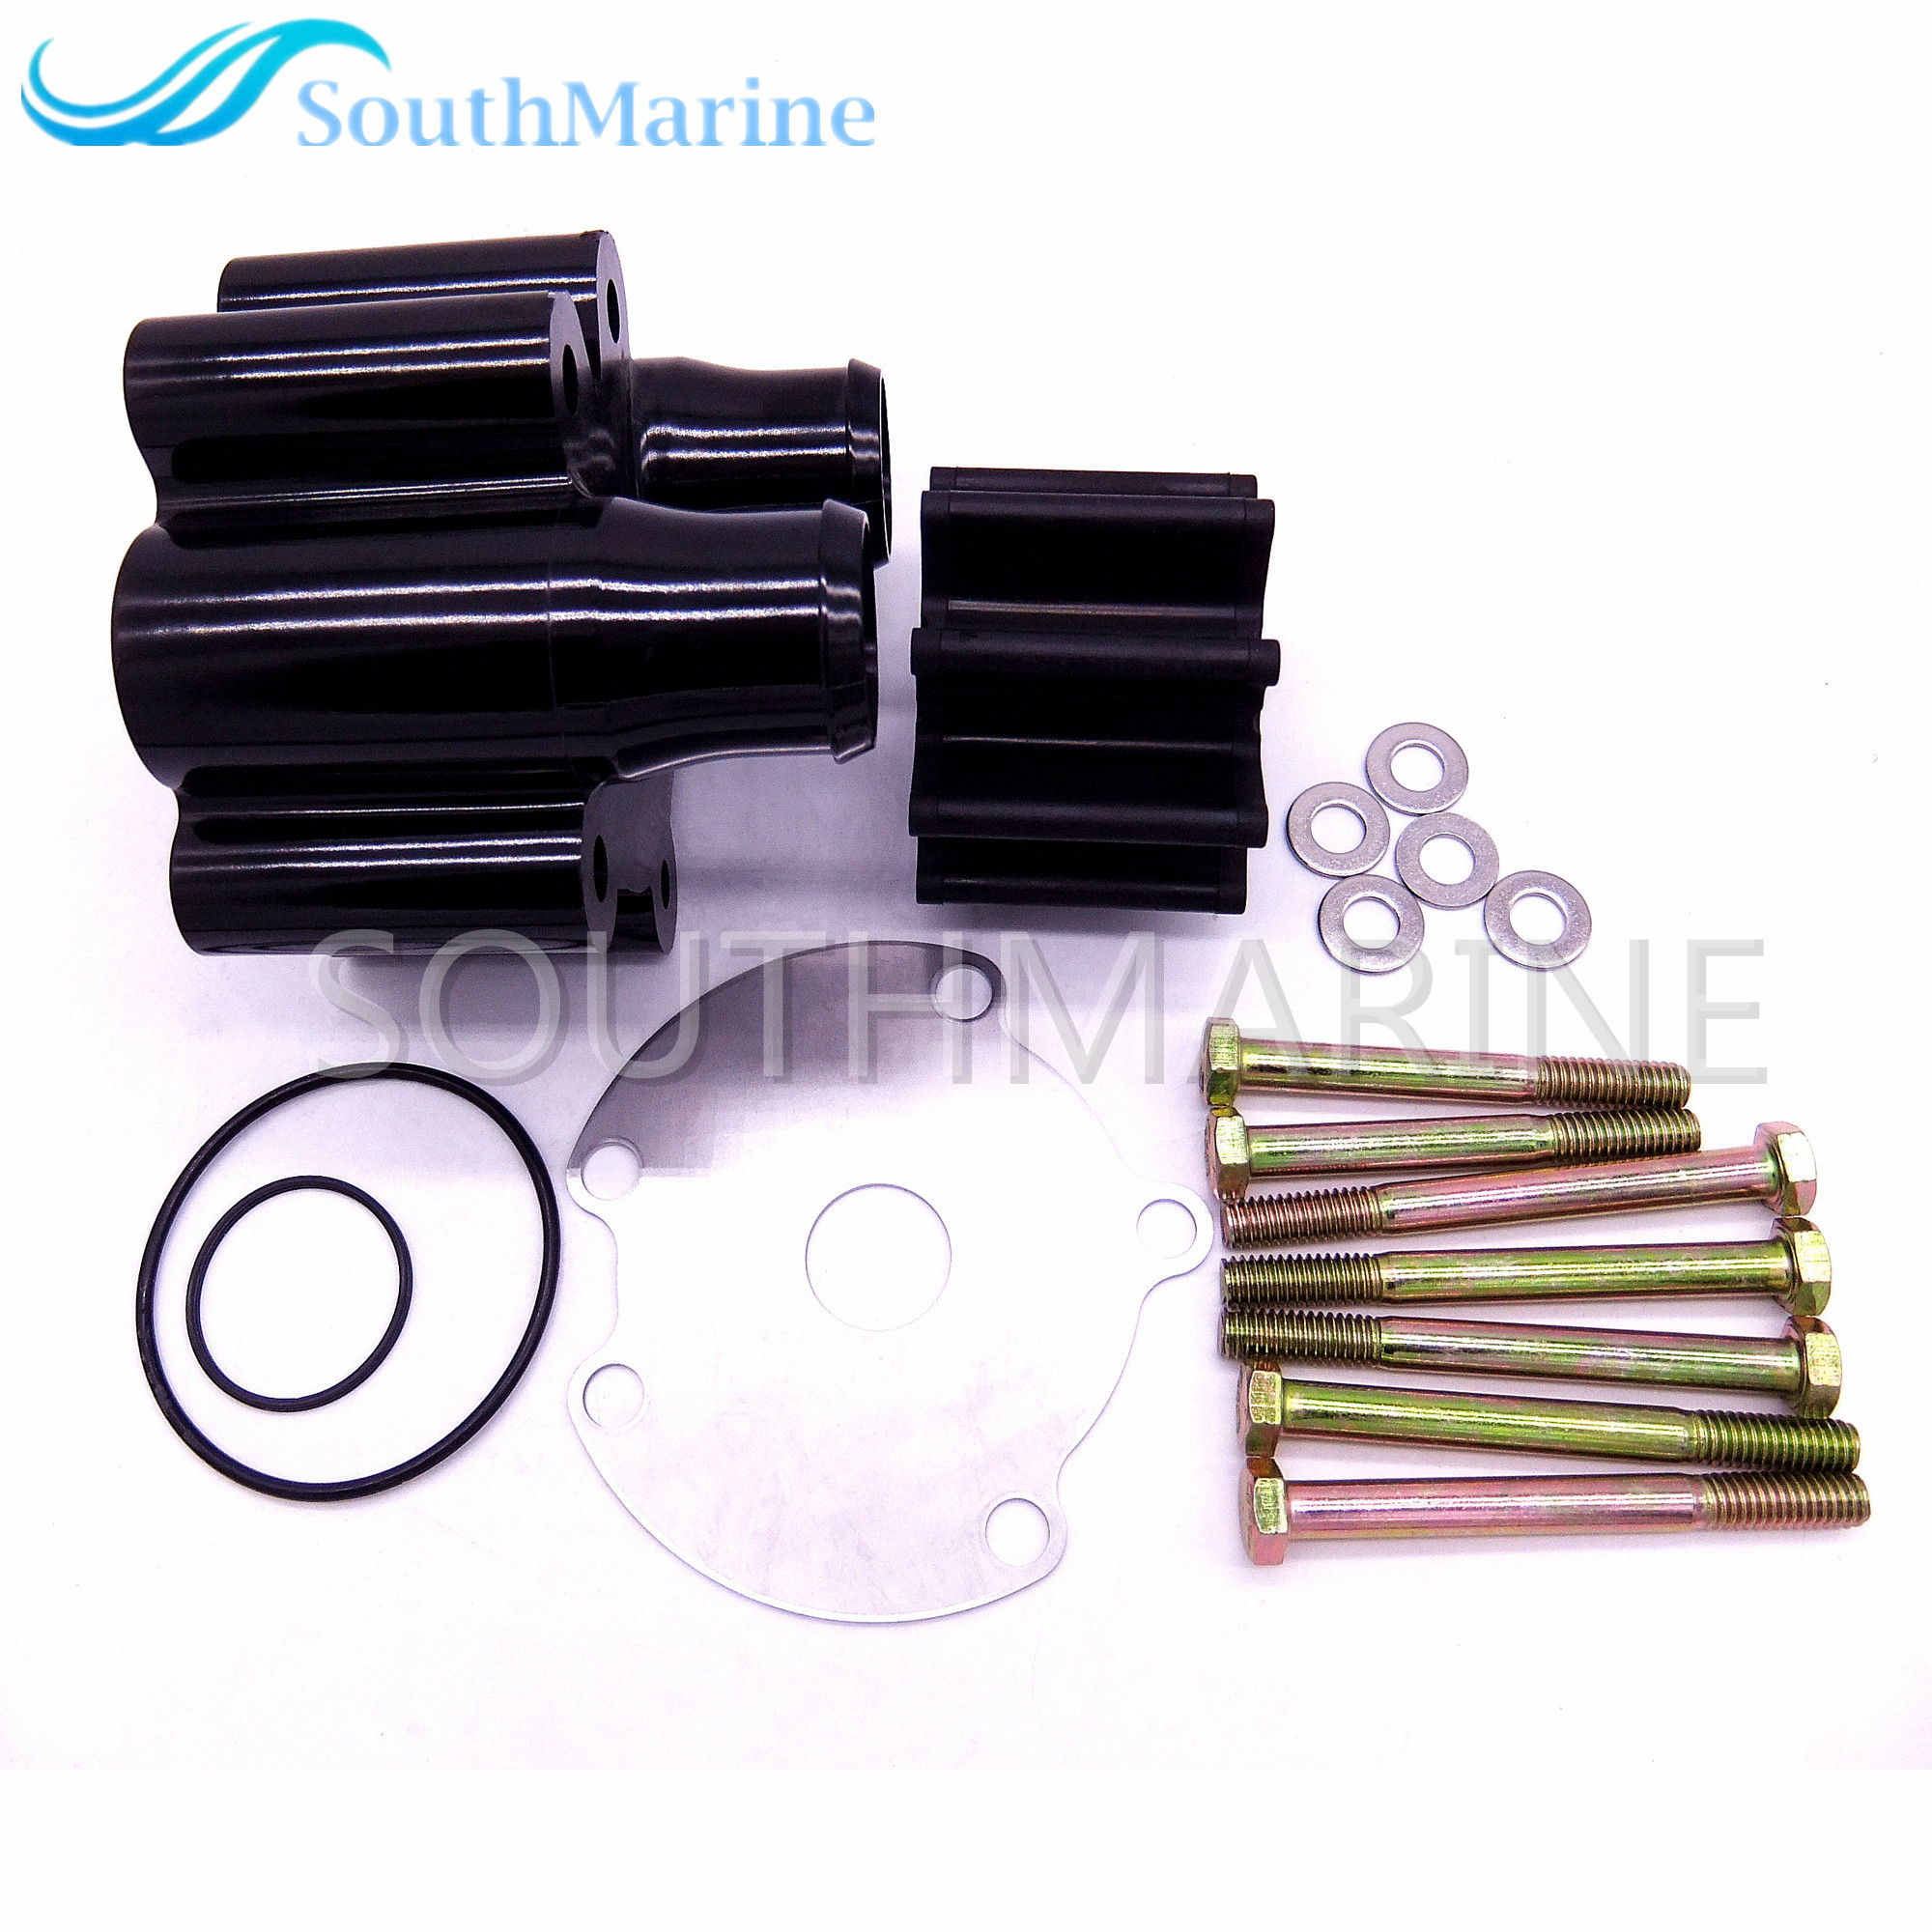 46-807151A14 46-807151A7 807151A14 for MerCruiser Bravo Water Pump Impeller Kit 807151A746-807151A14 46-807151A7 807151A14 for MerCruiser Bravo Water Pump Impeller Kit 807151A7